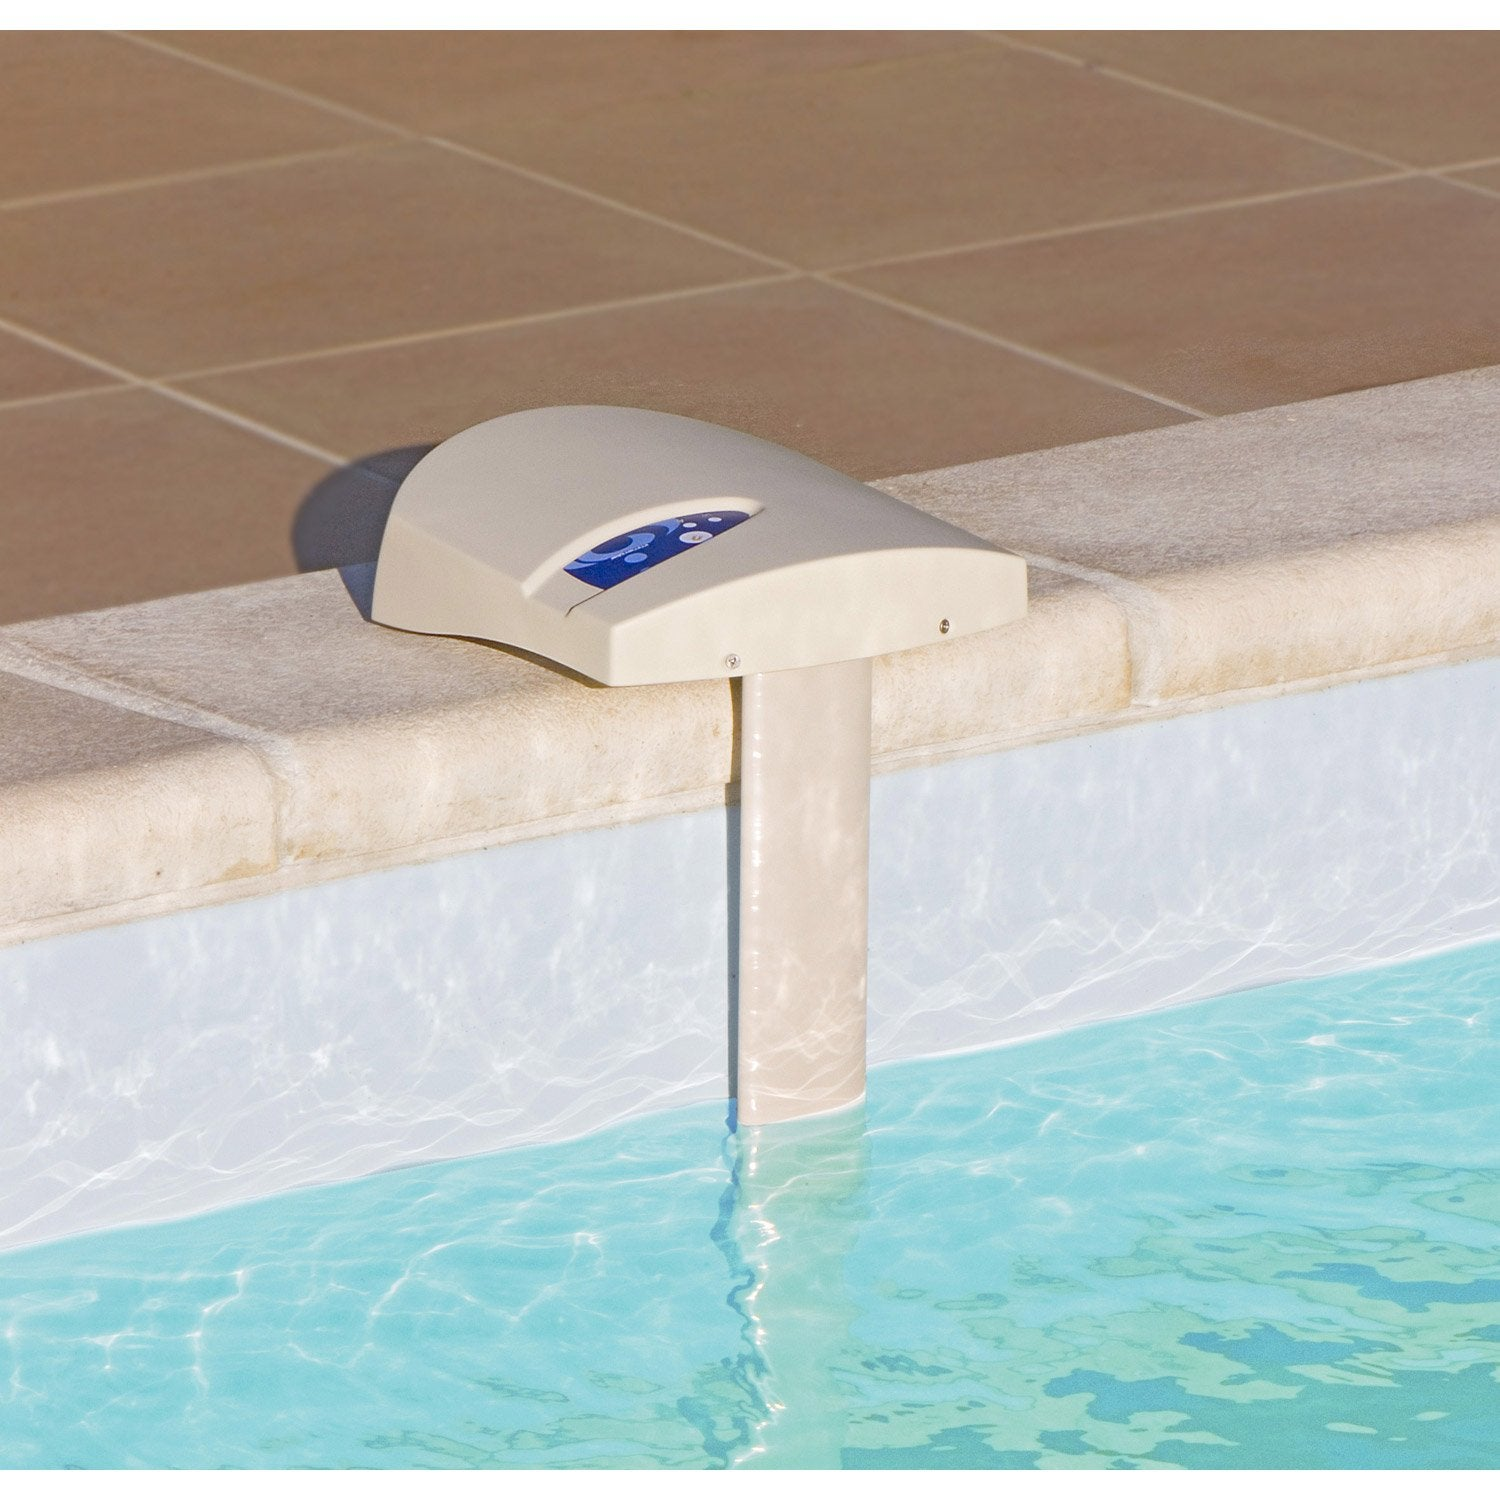 Kit alarme pour piscine enterr e a immersion visiopool for Piscine en kit enterree